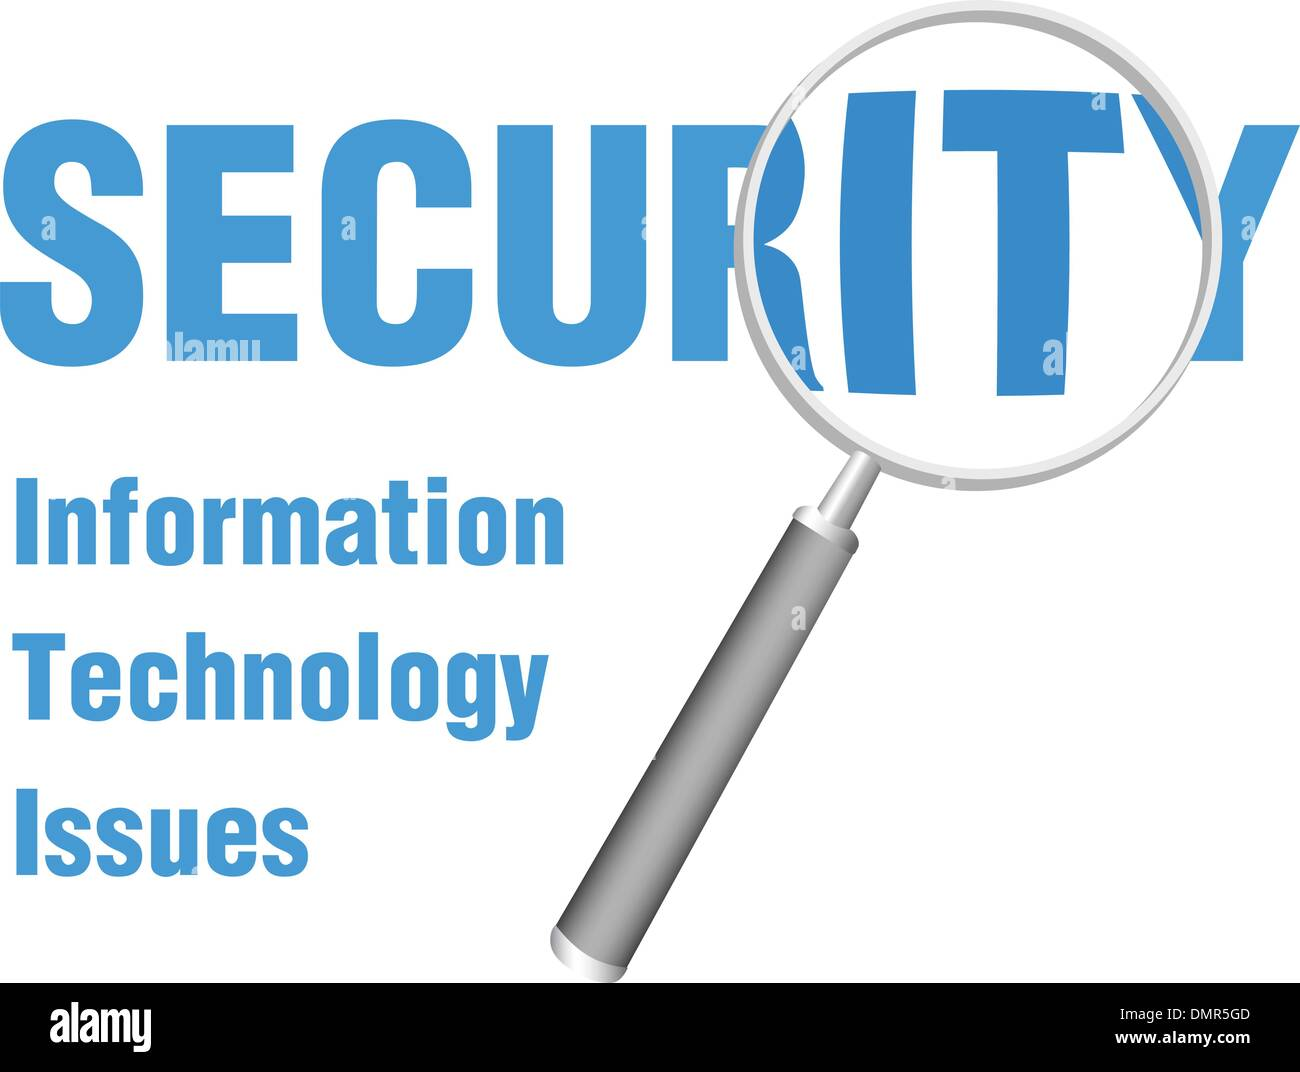 Magnifying Focus on IT Security Technology Issues - Stock Vector